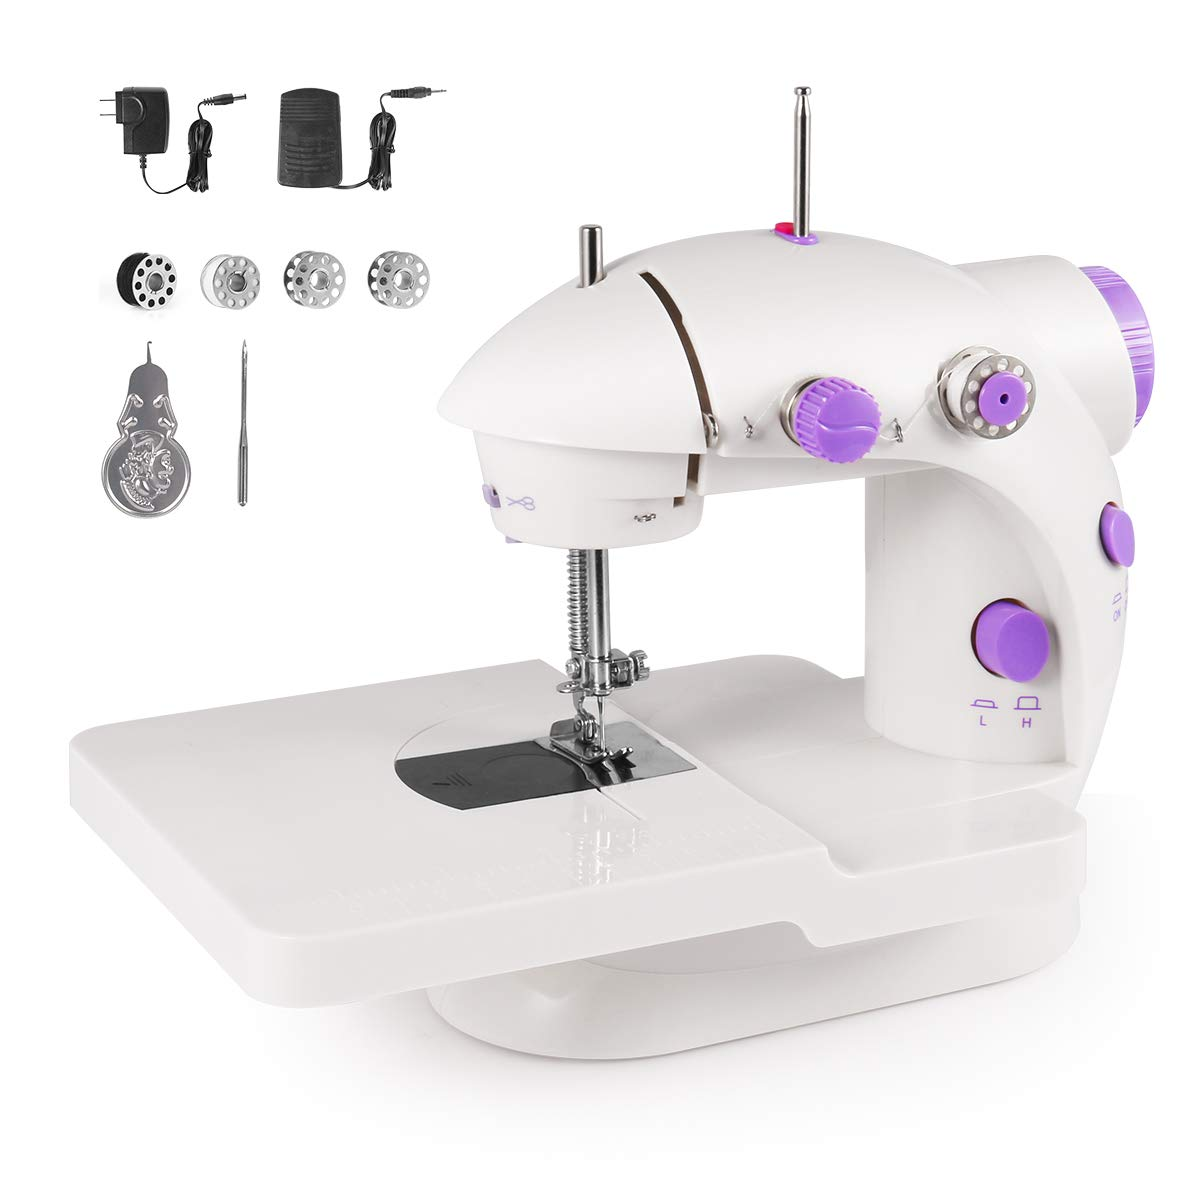 Top 6 Best Portable Sewing Machine (2020 Reviews & Buying Guide) 6